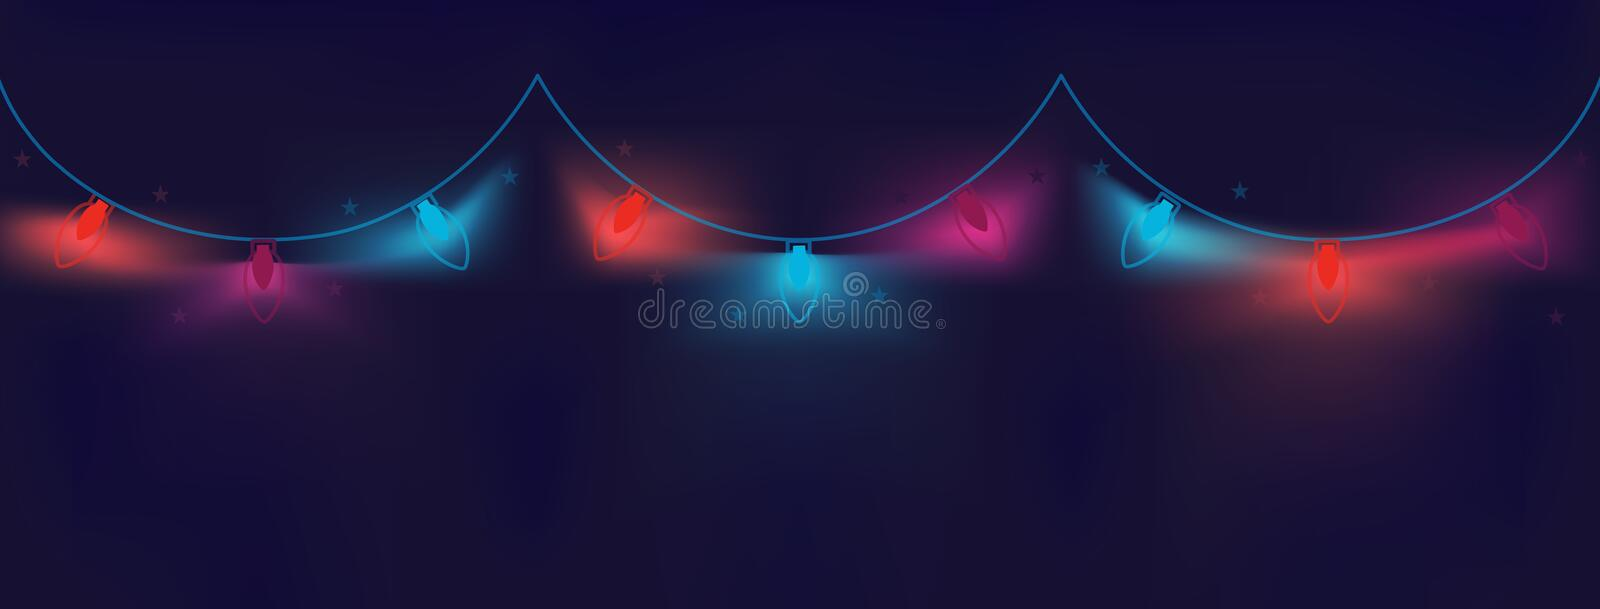 Festive Christmas colored luminous garlands of bulbs on a dark, wavy, geometric background with a gradient in neon shades royalty free illustration